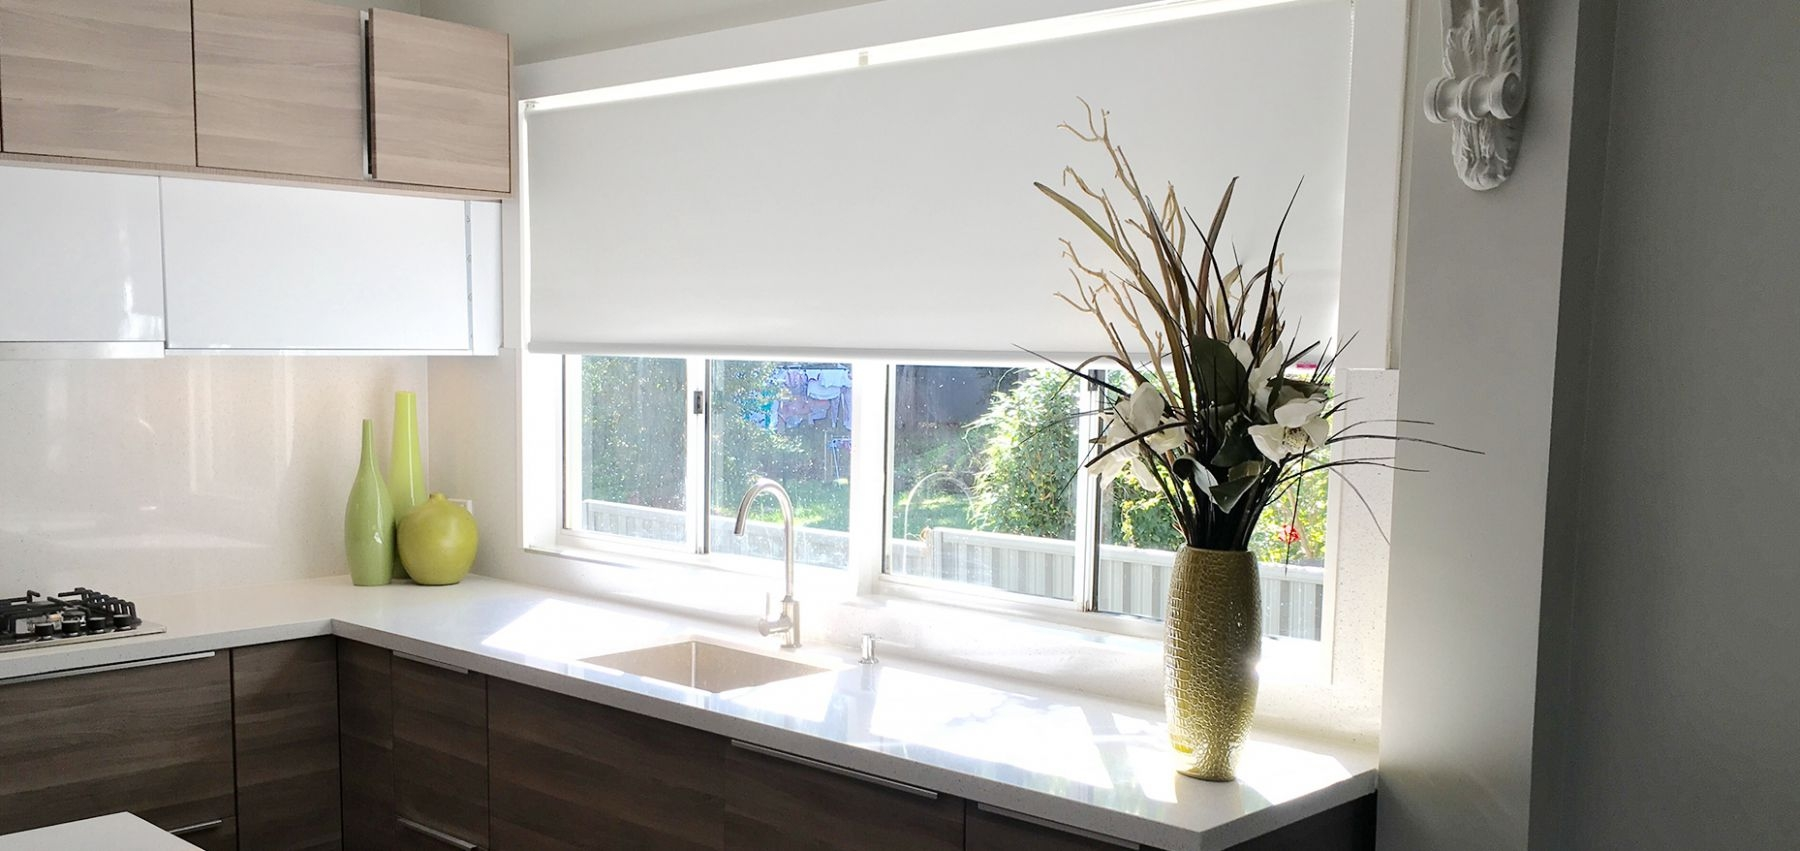 Cheap Roller Blinds Melbourne 15 Photos Luxury Roller Blinds Curtain Ideas